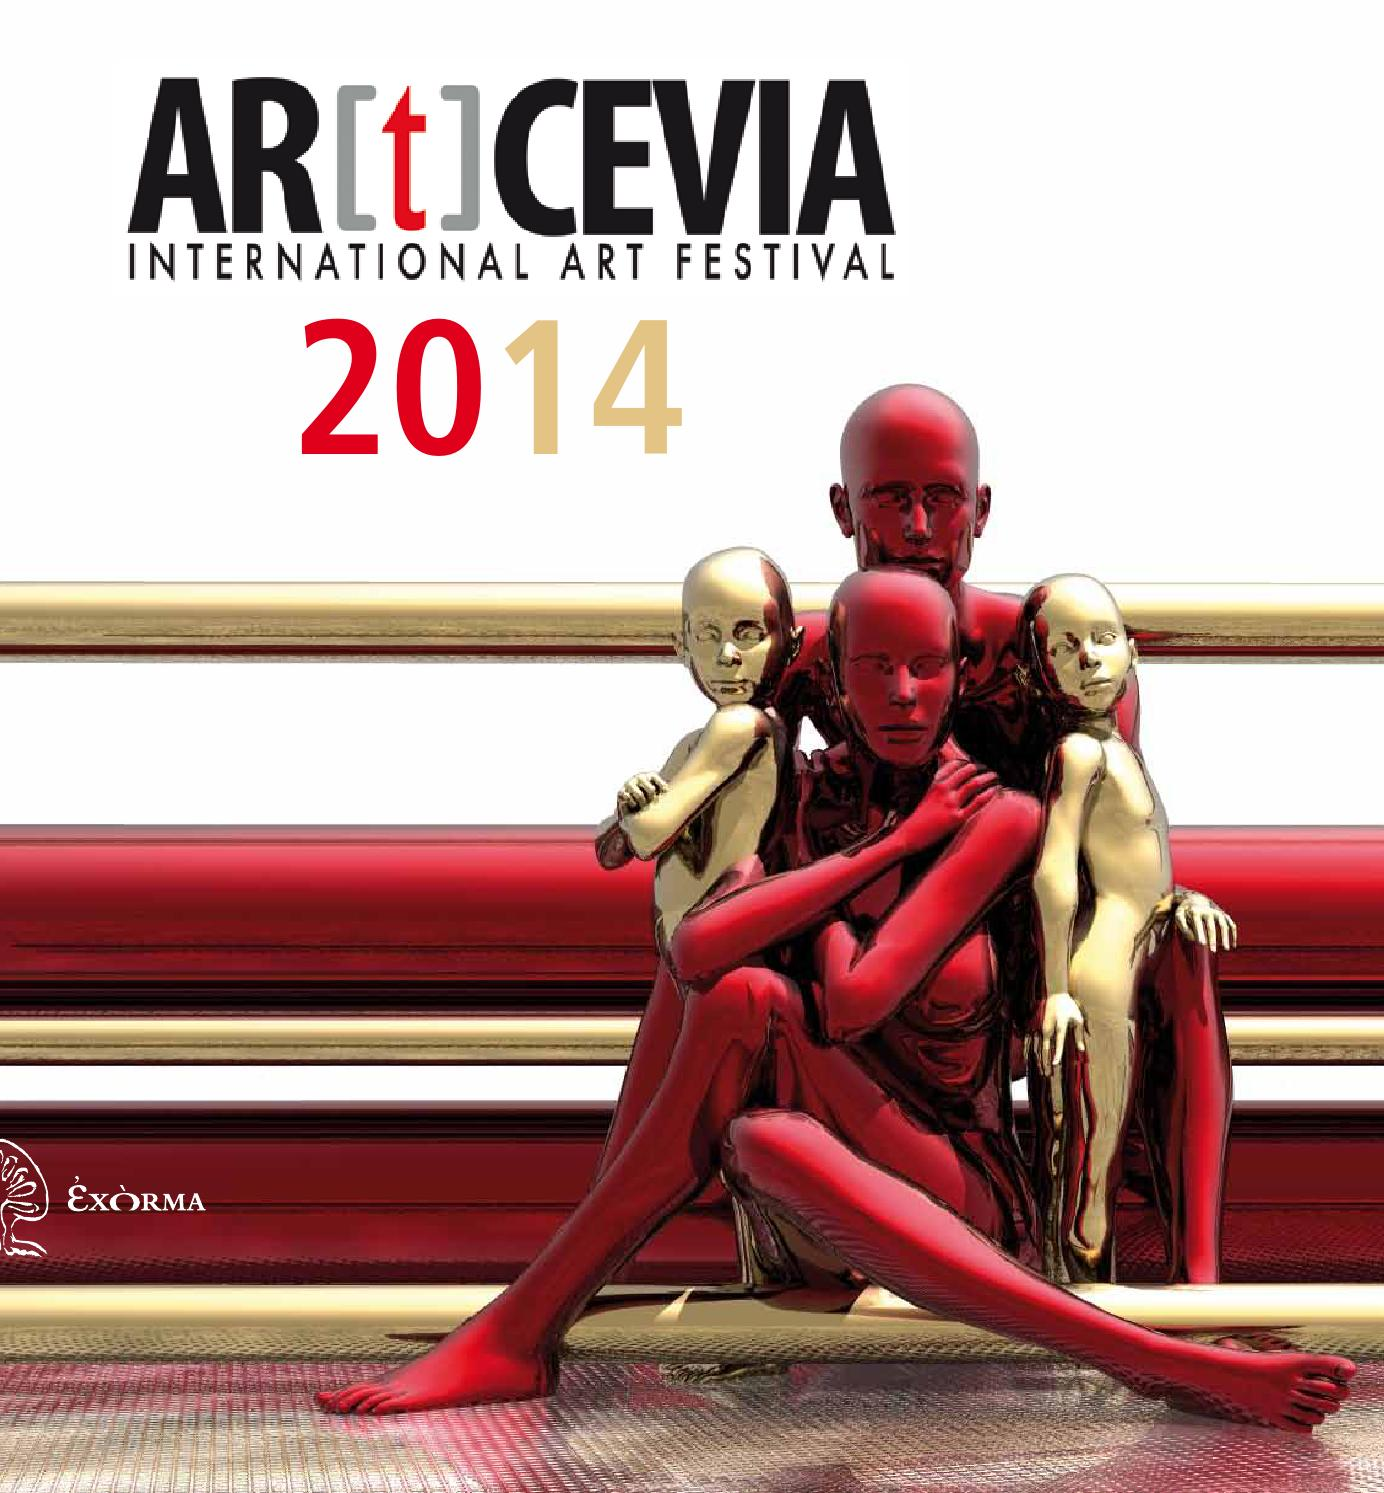 Artcevia International Art Festival